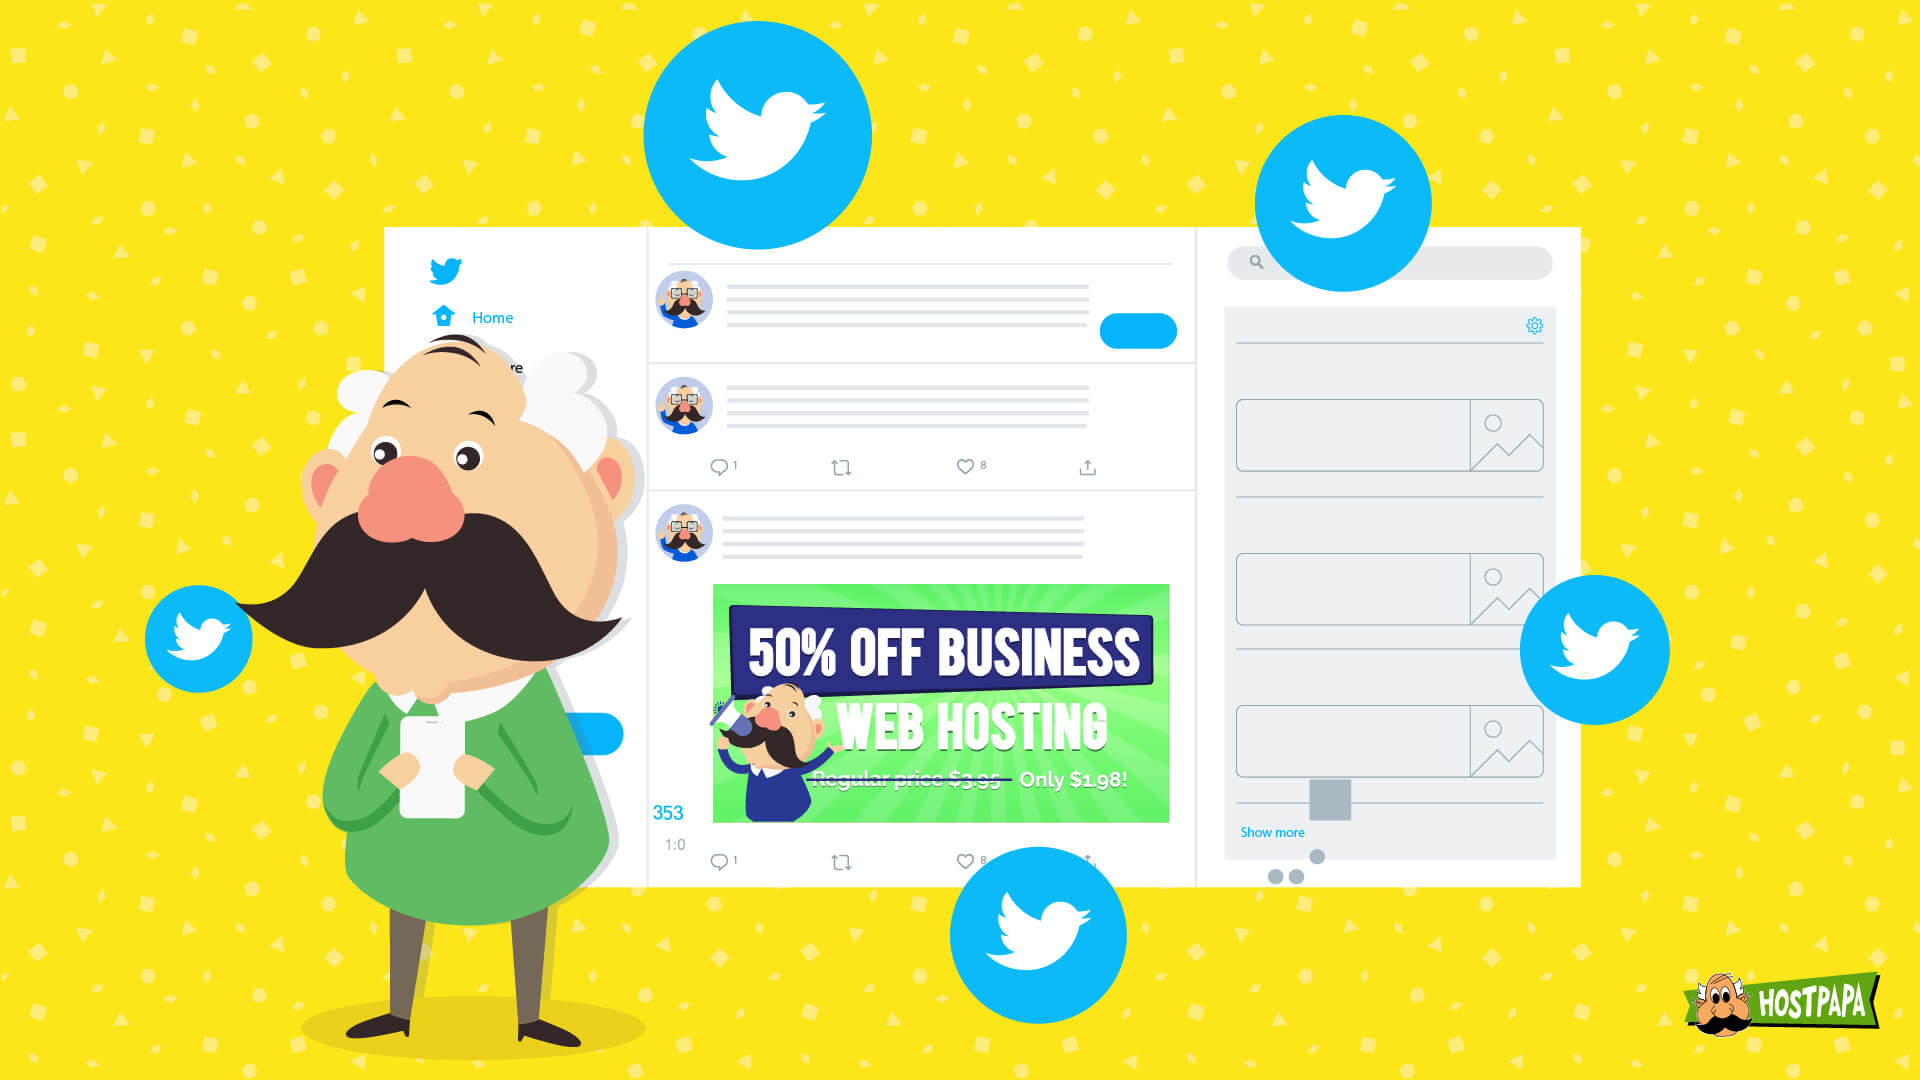 Check these tips for your Twitter's small business